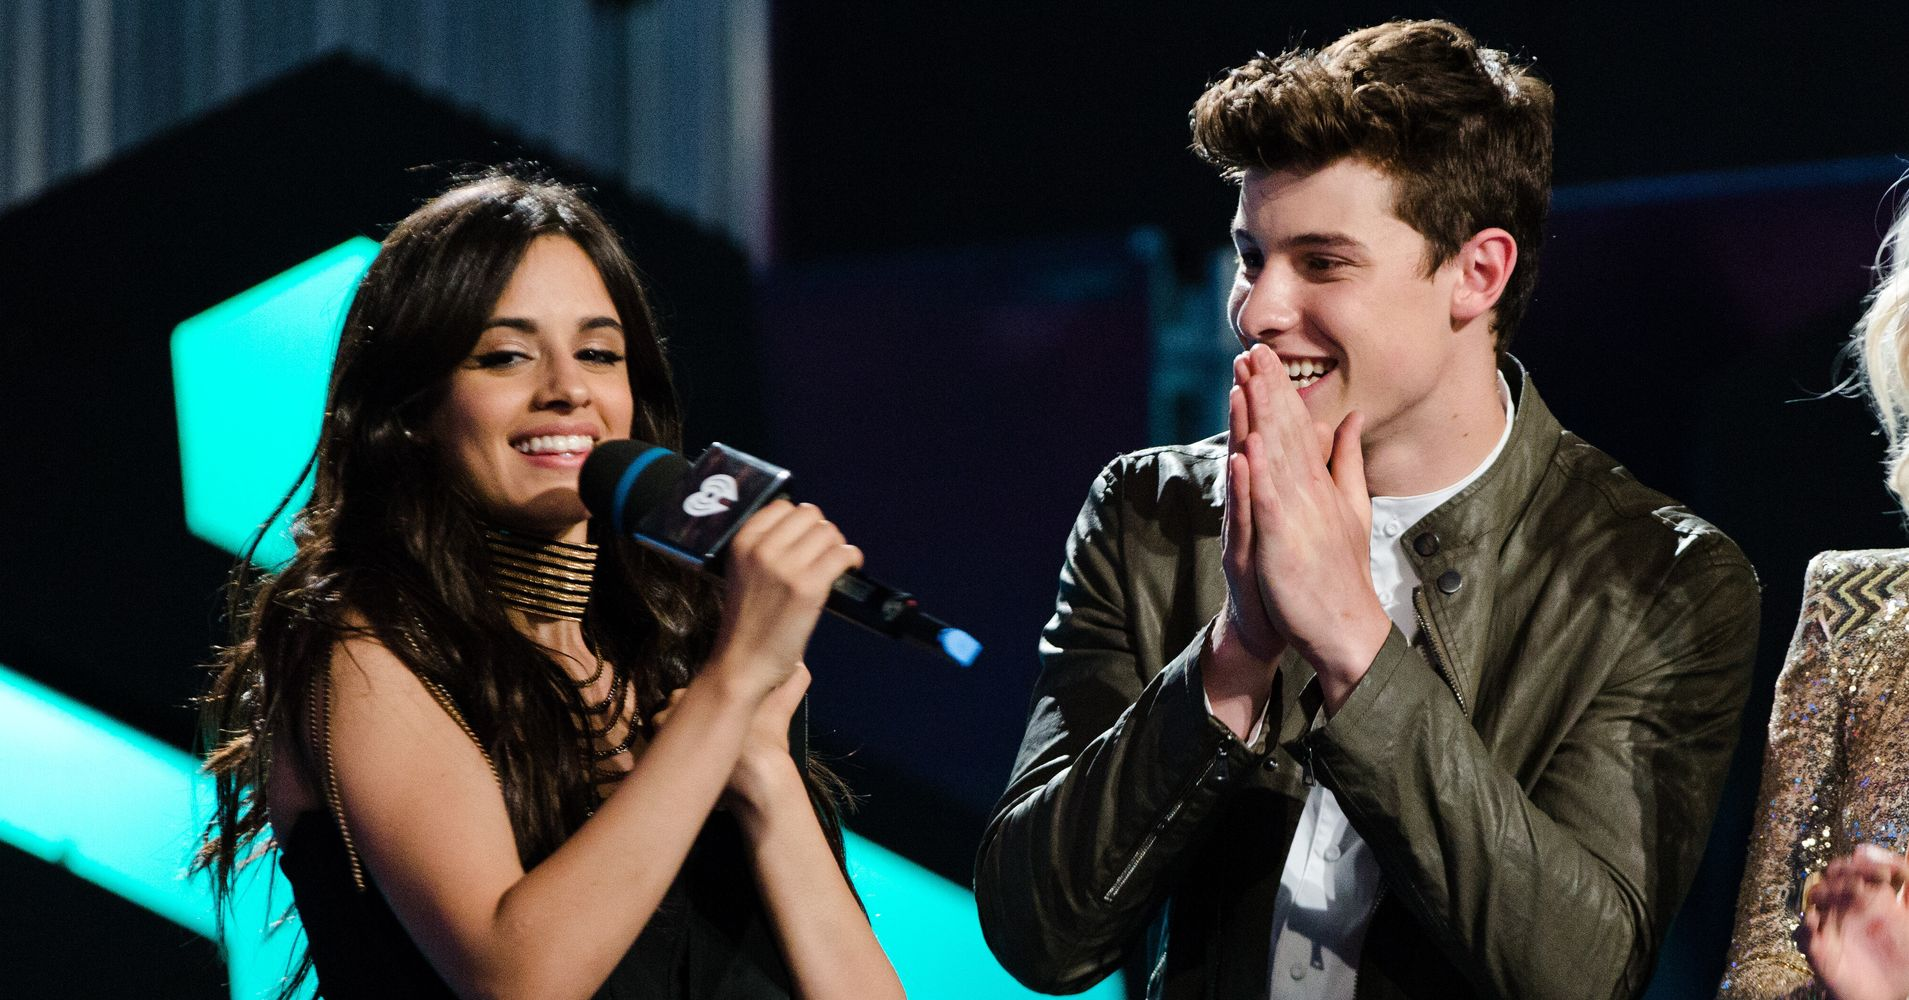 Camila Cabello has rare friendship with duet partner Shawn Mendes